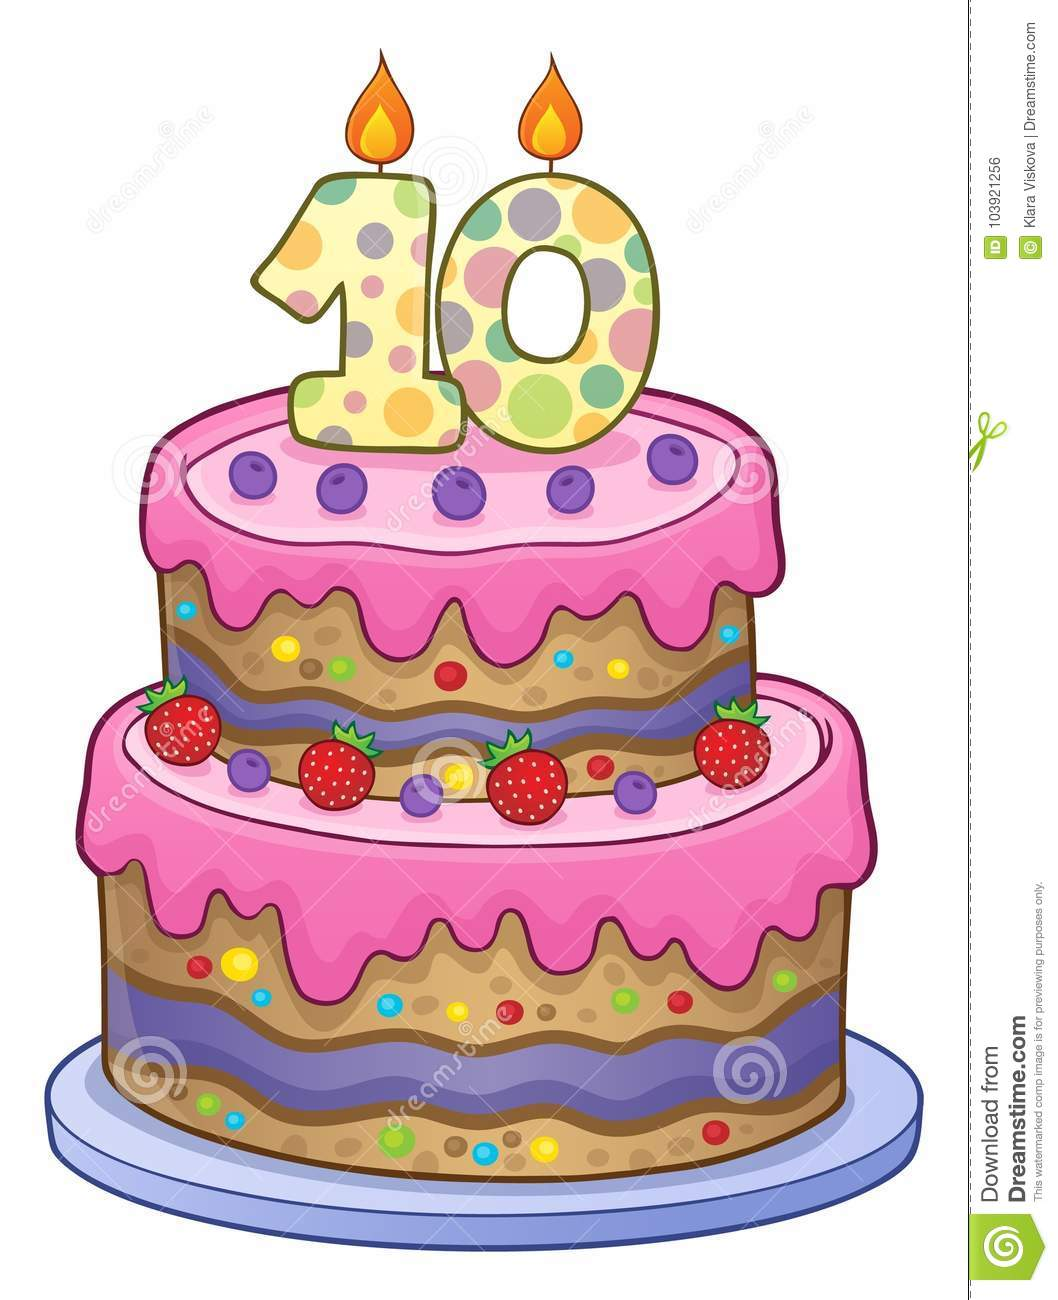 Birthday Cake Image For 10 Years Old Stock Vector